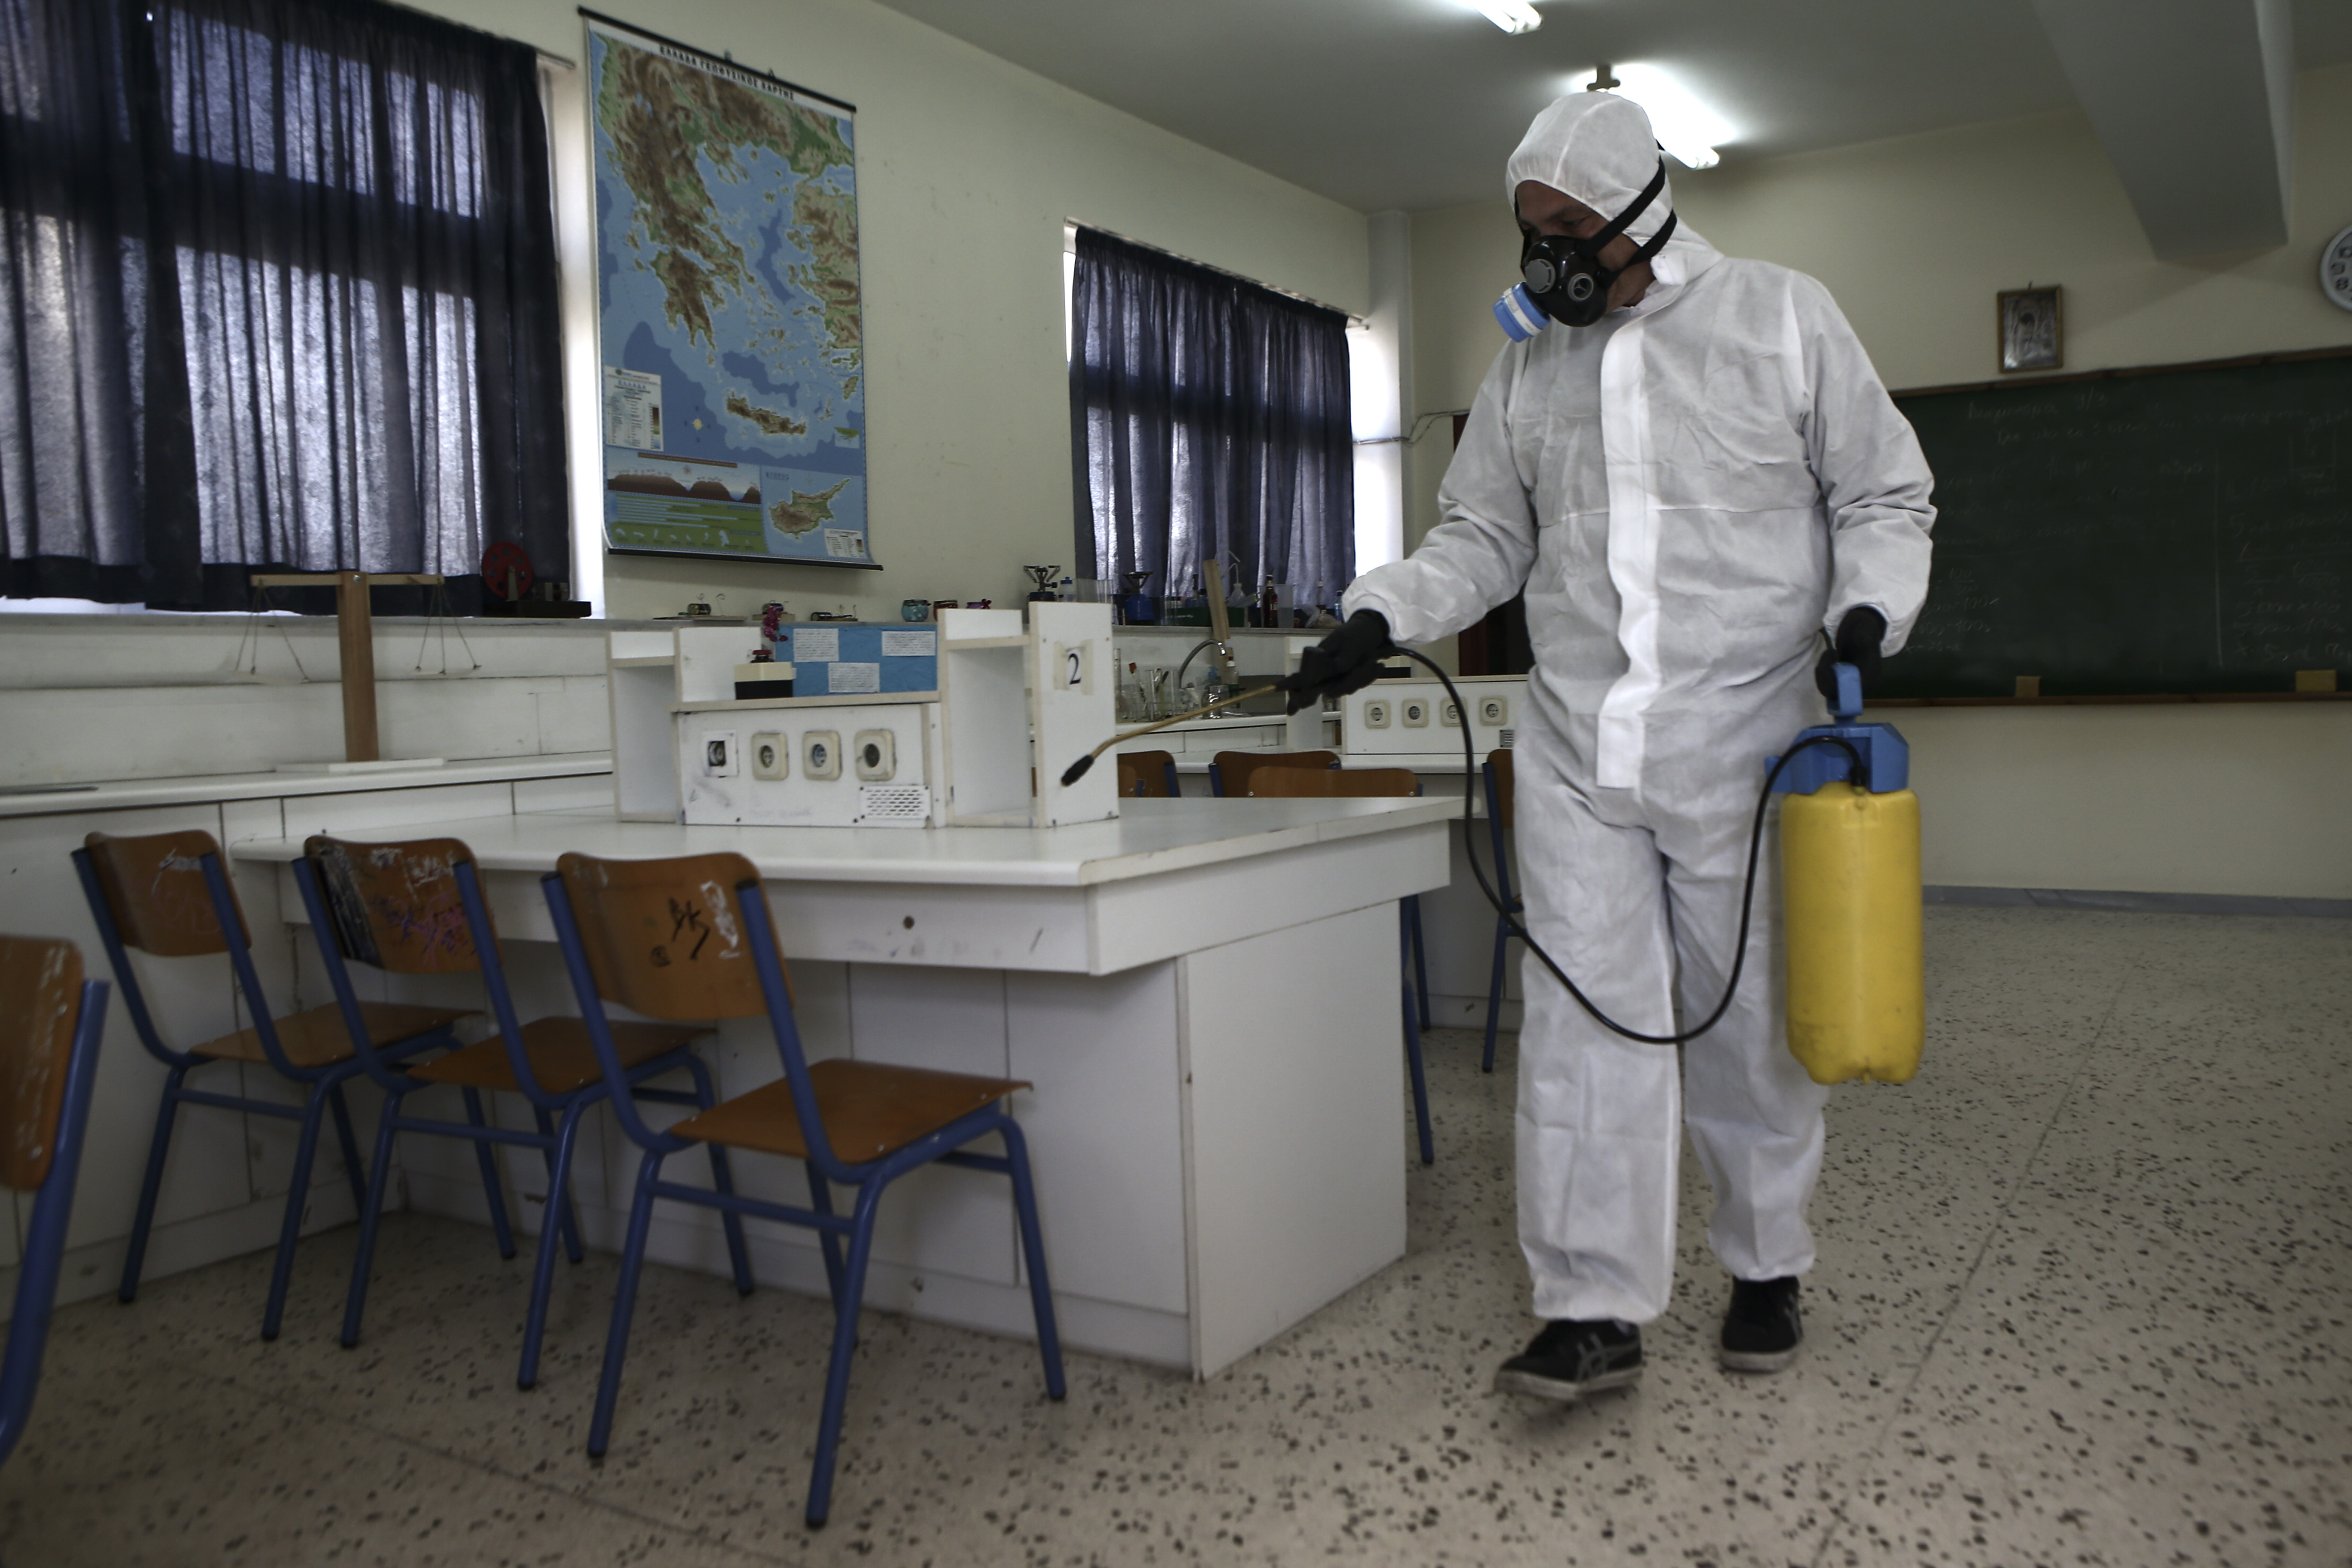 A worker wearing a protective suit sprays disinfectant inside a classroom at a high school in Athens, Greece on Friday, March 6.